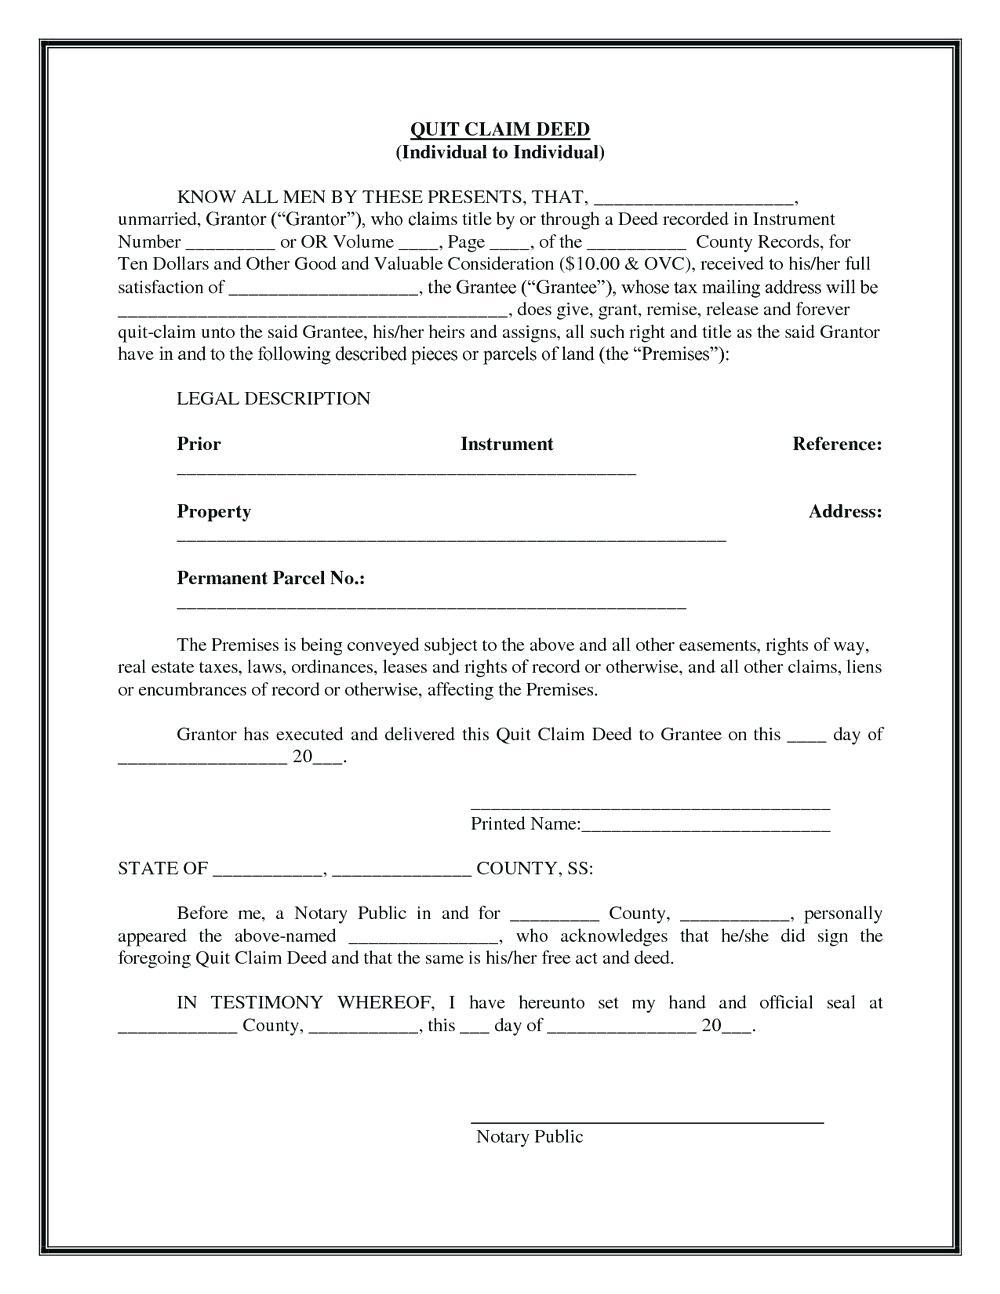 Quit Claim Deed Form Lee County Florida